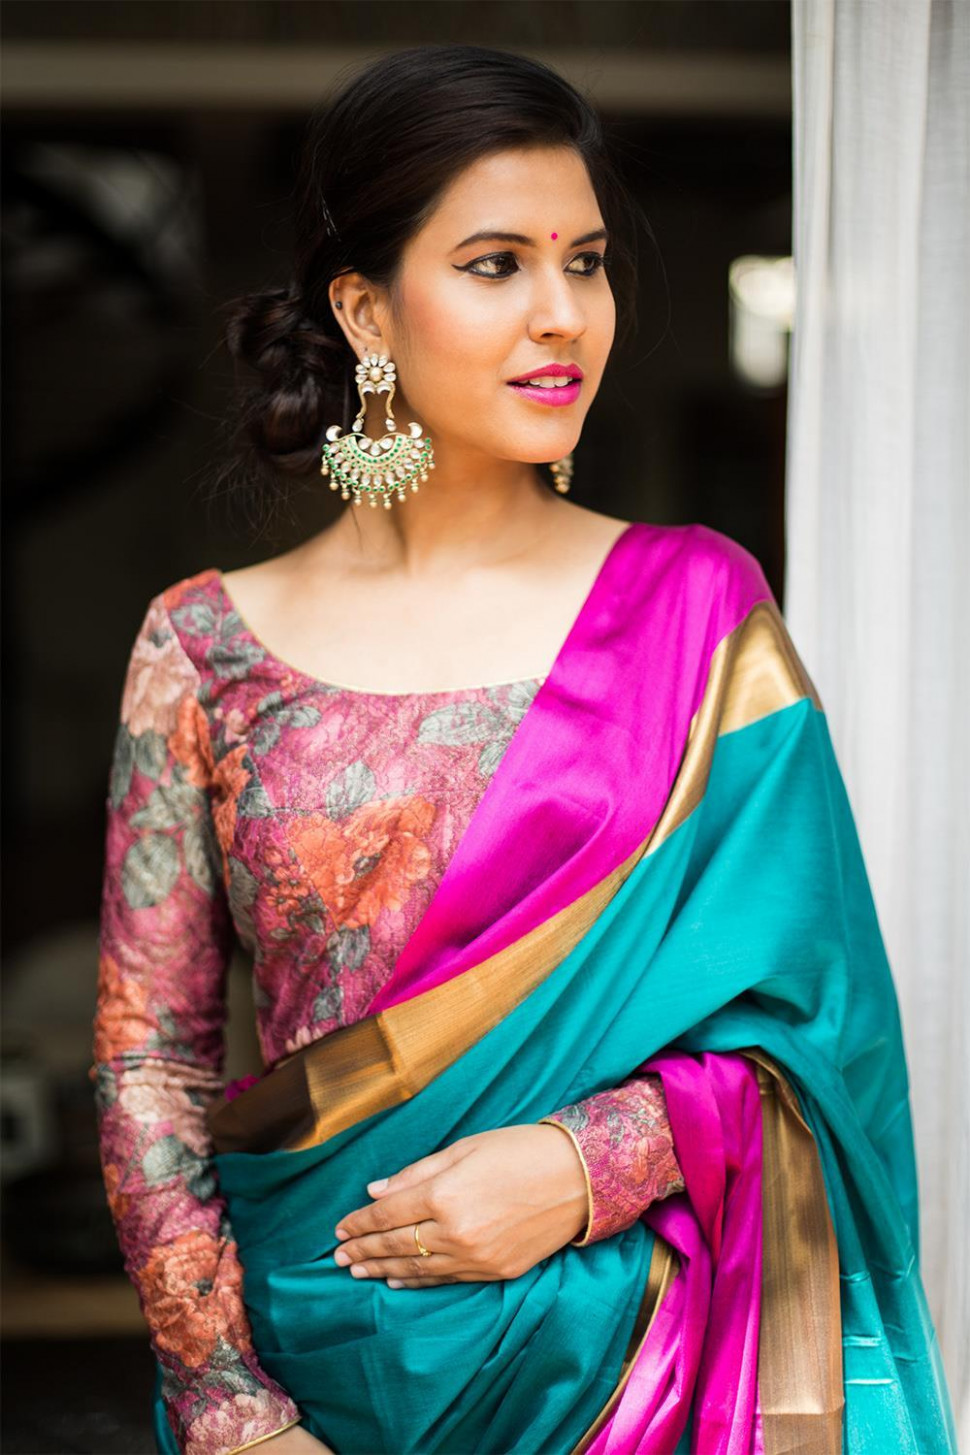 Boat Neck Blouse Designs For Cotton Sarees